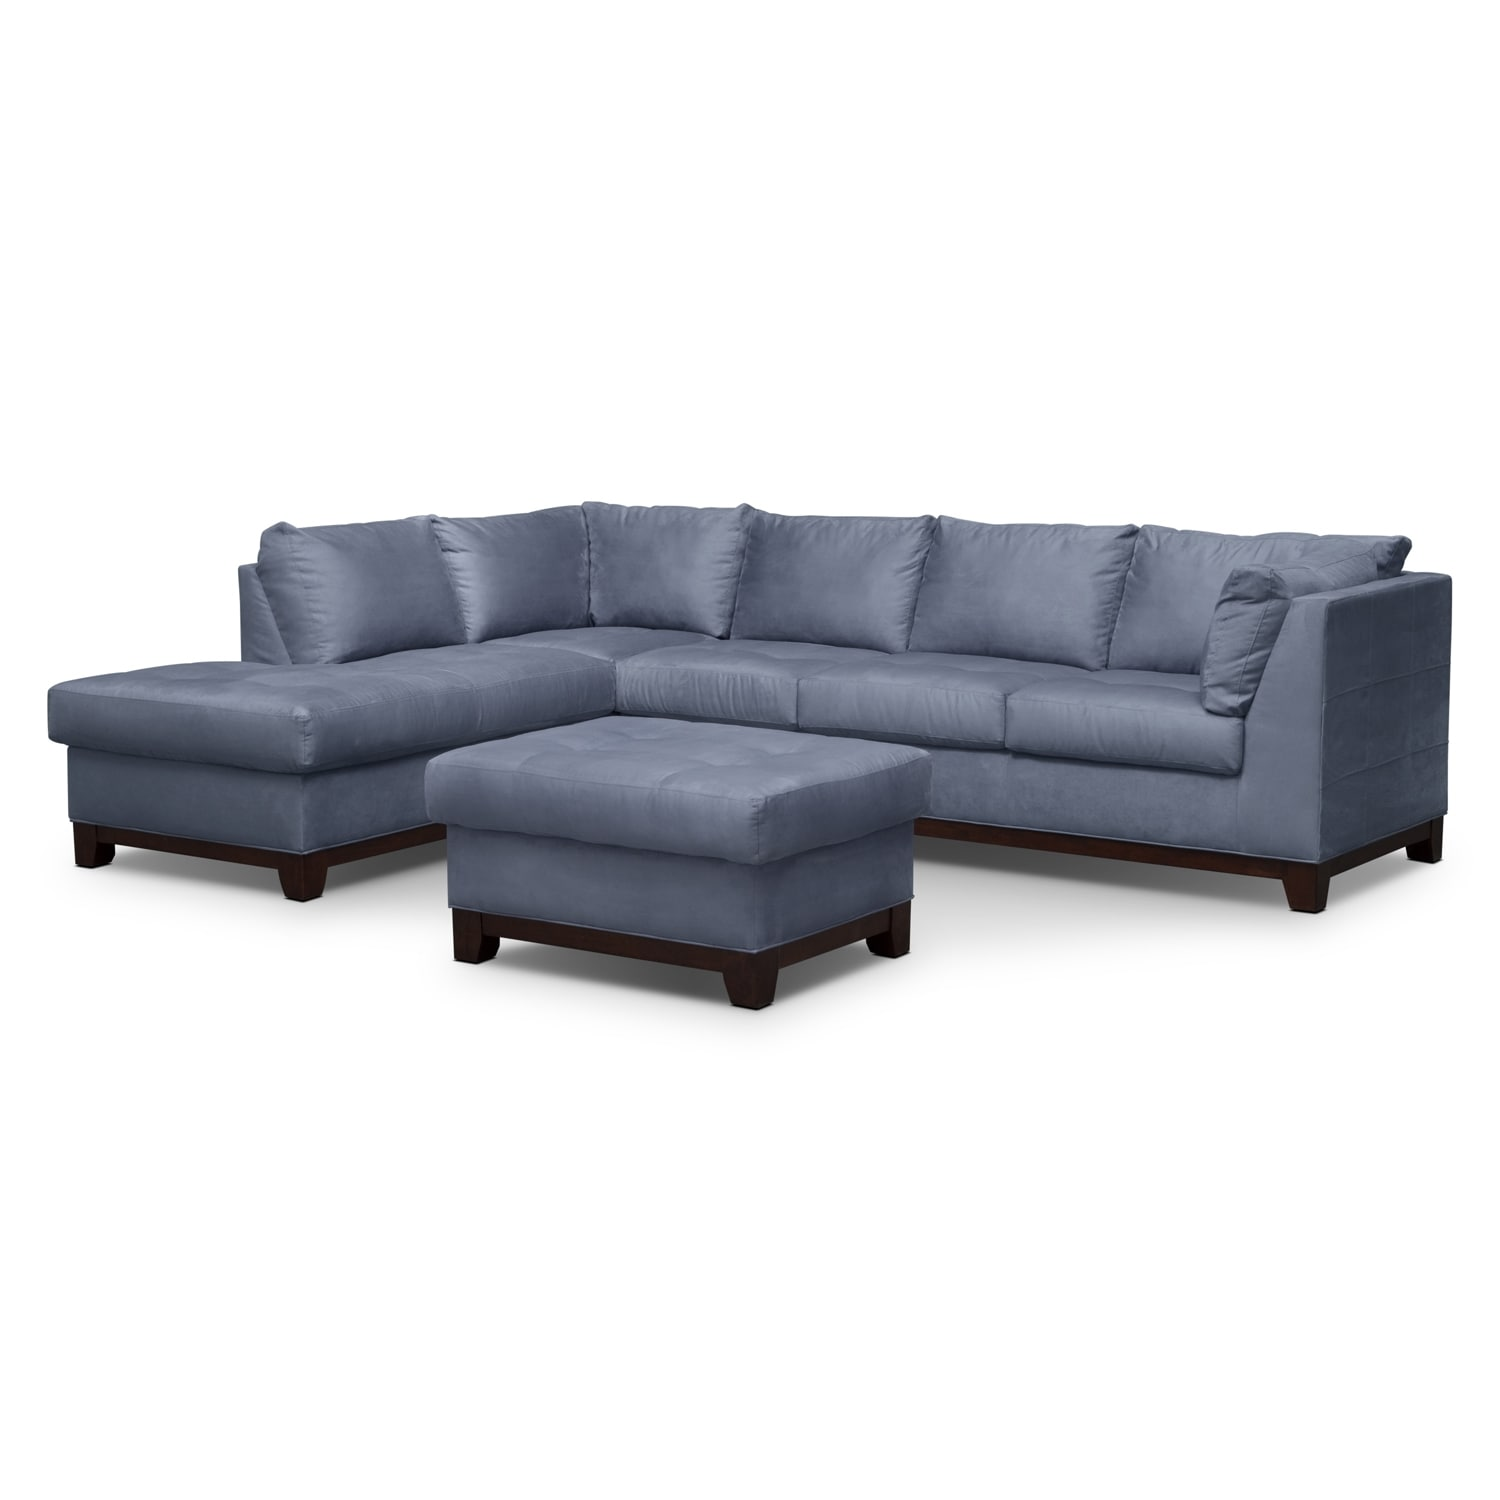 Soho 2 Piece Sectional With Left Facing Chaise And Ottoman   Steel